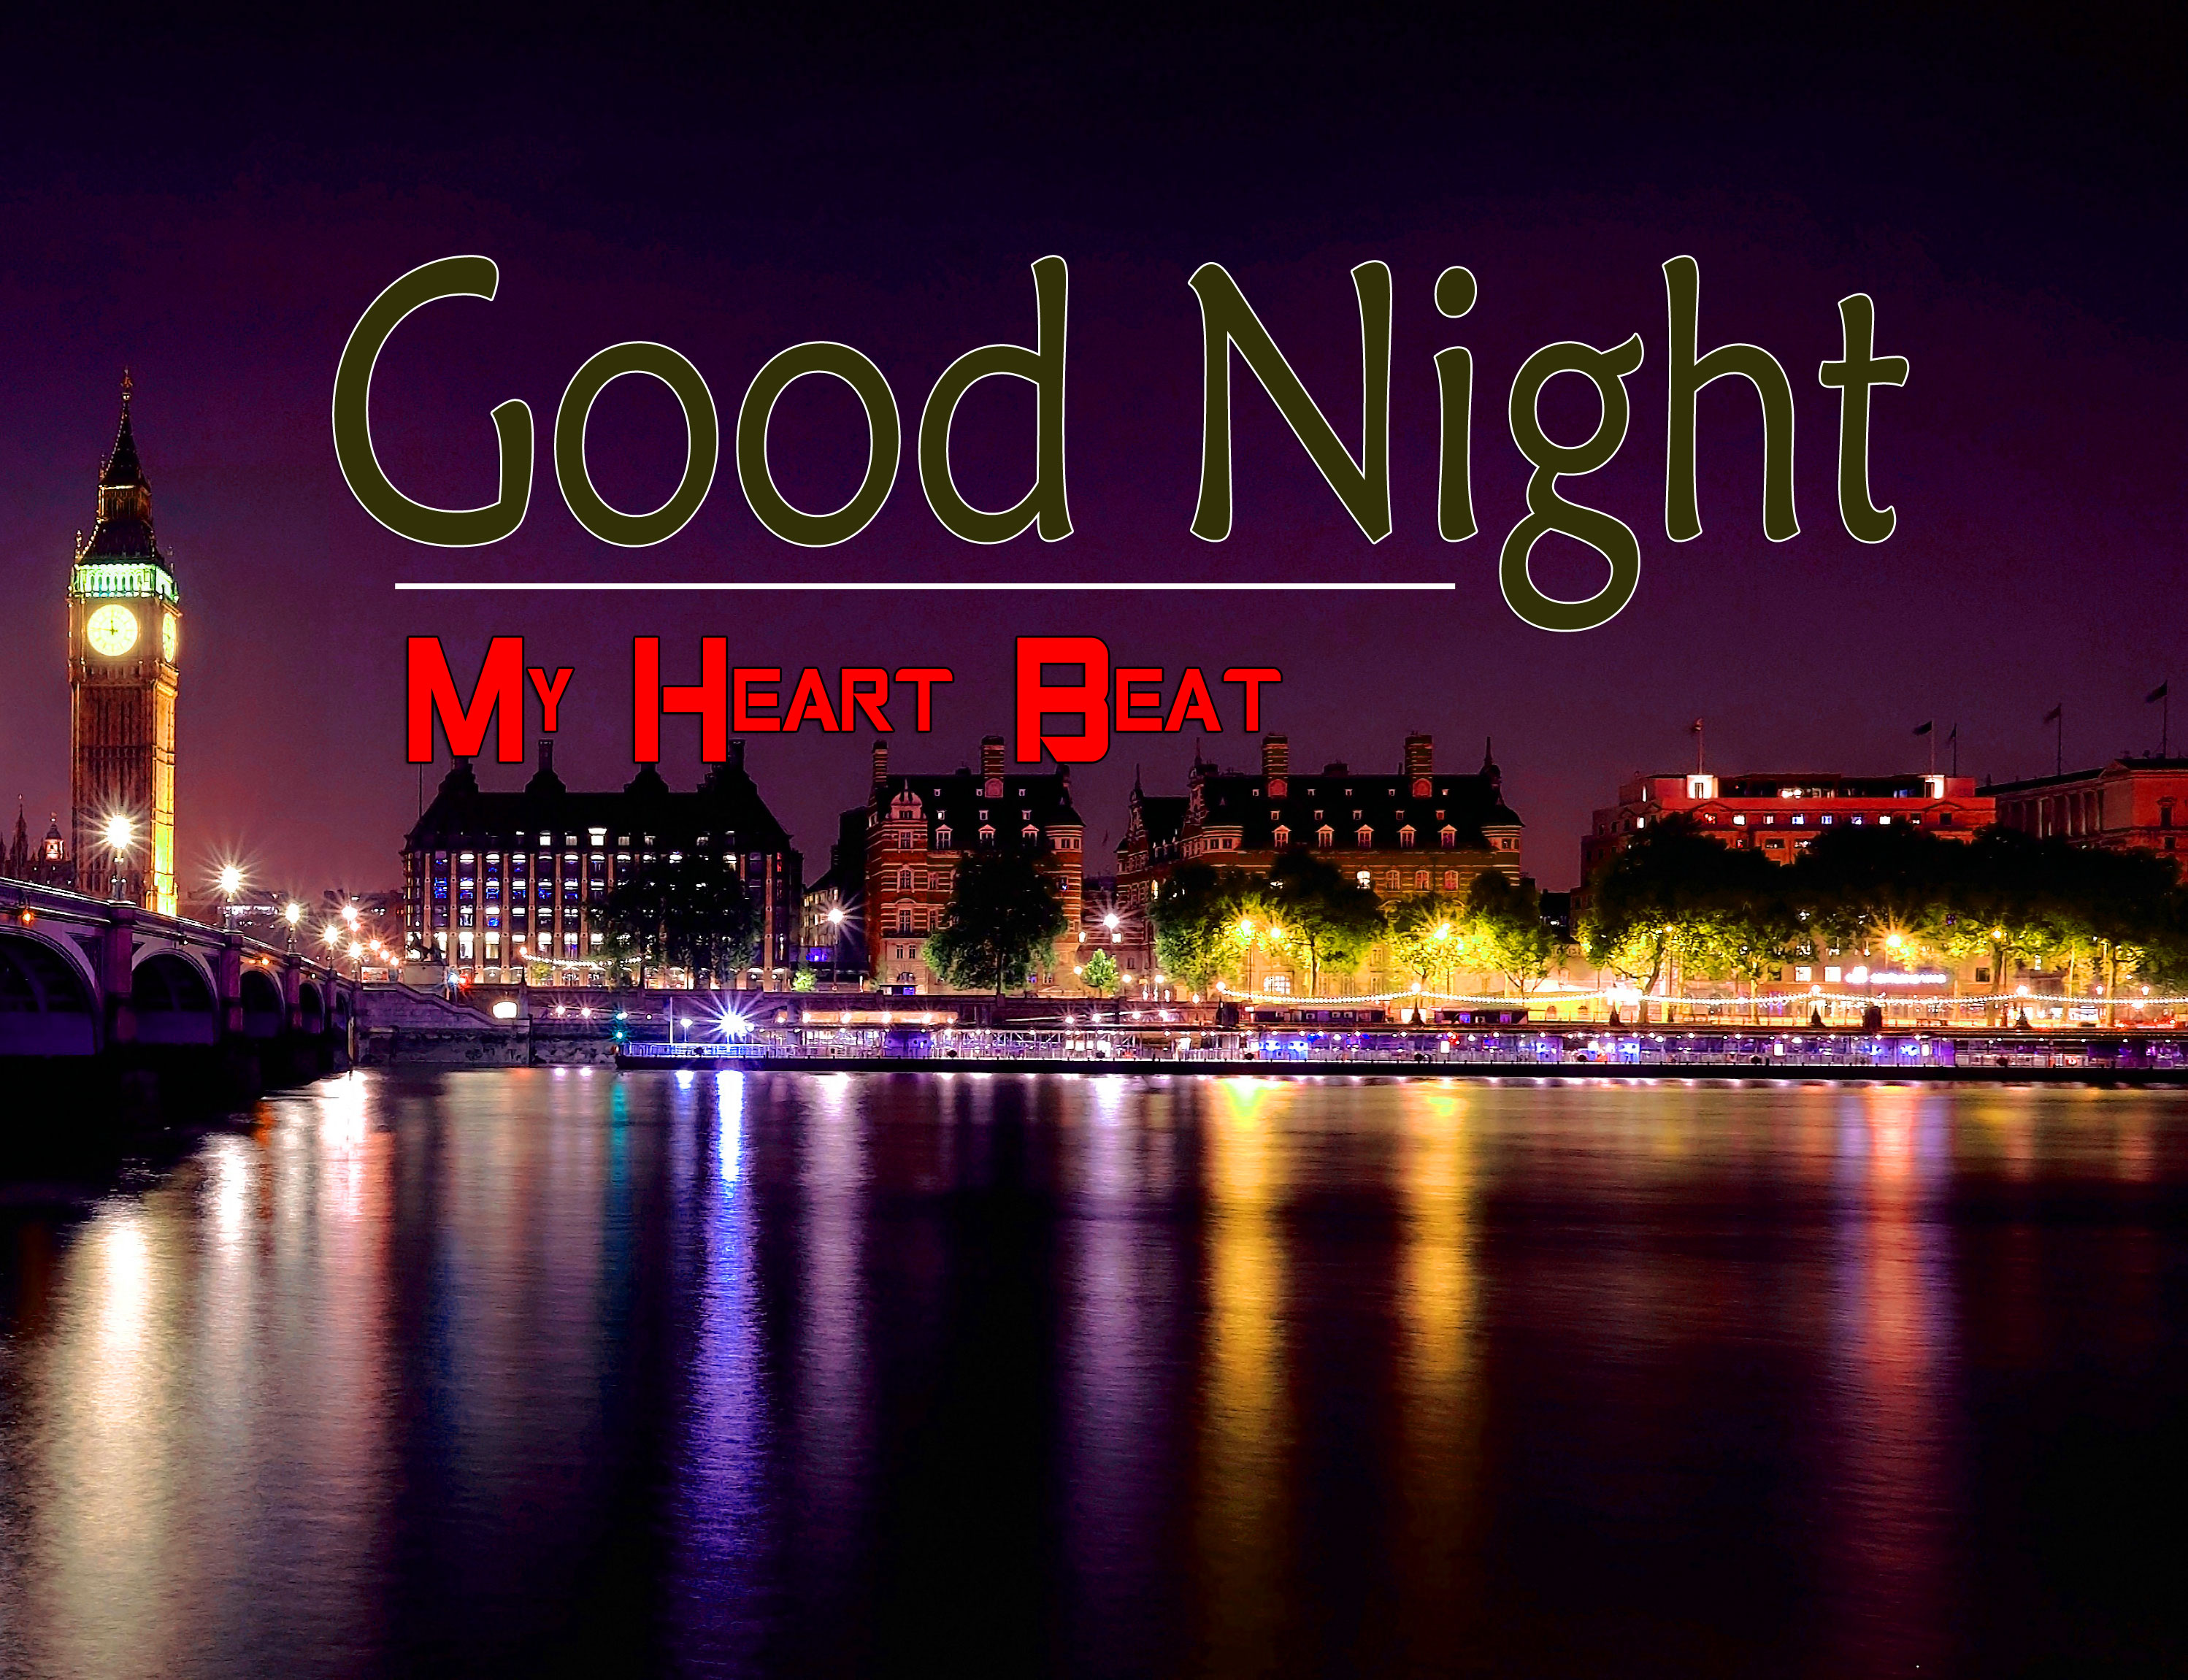 New Top Good Night Wishes k Images Pics Download